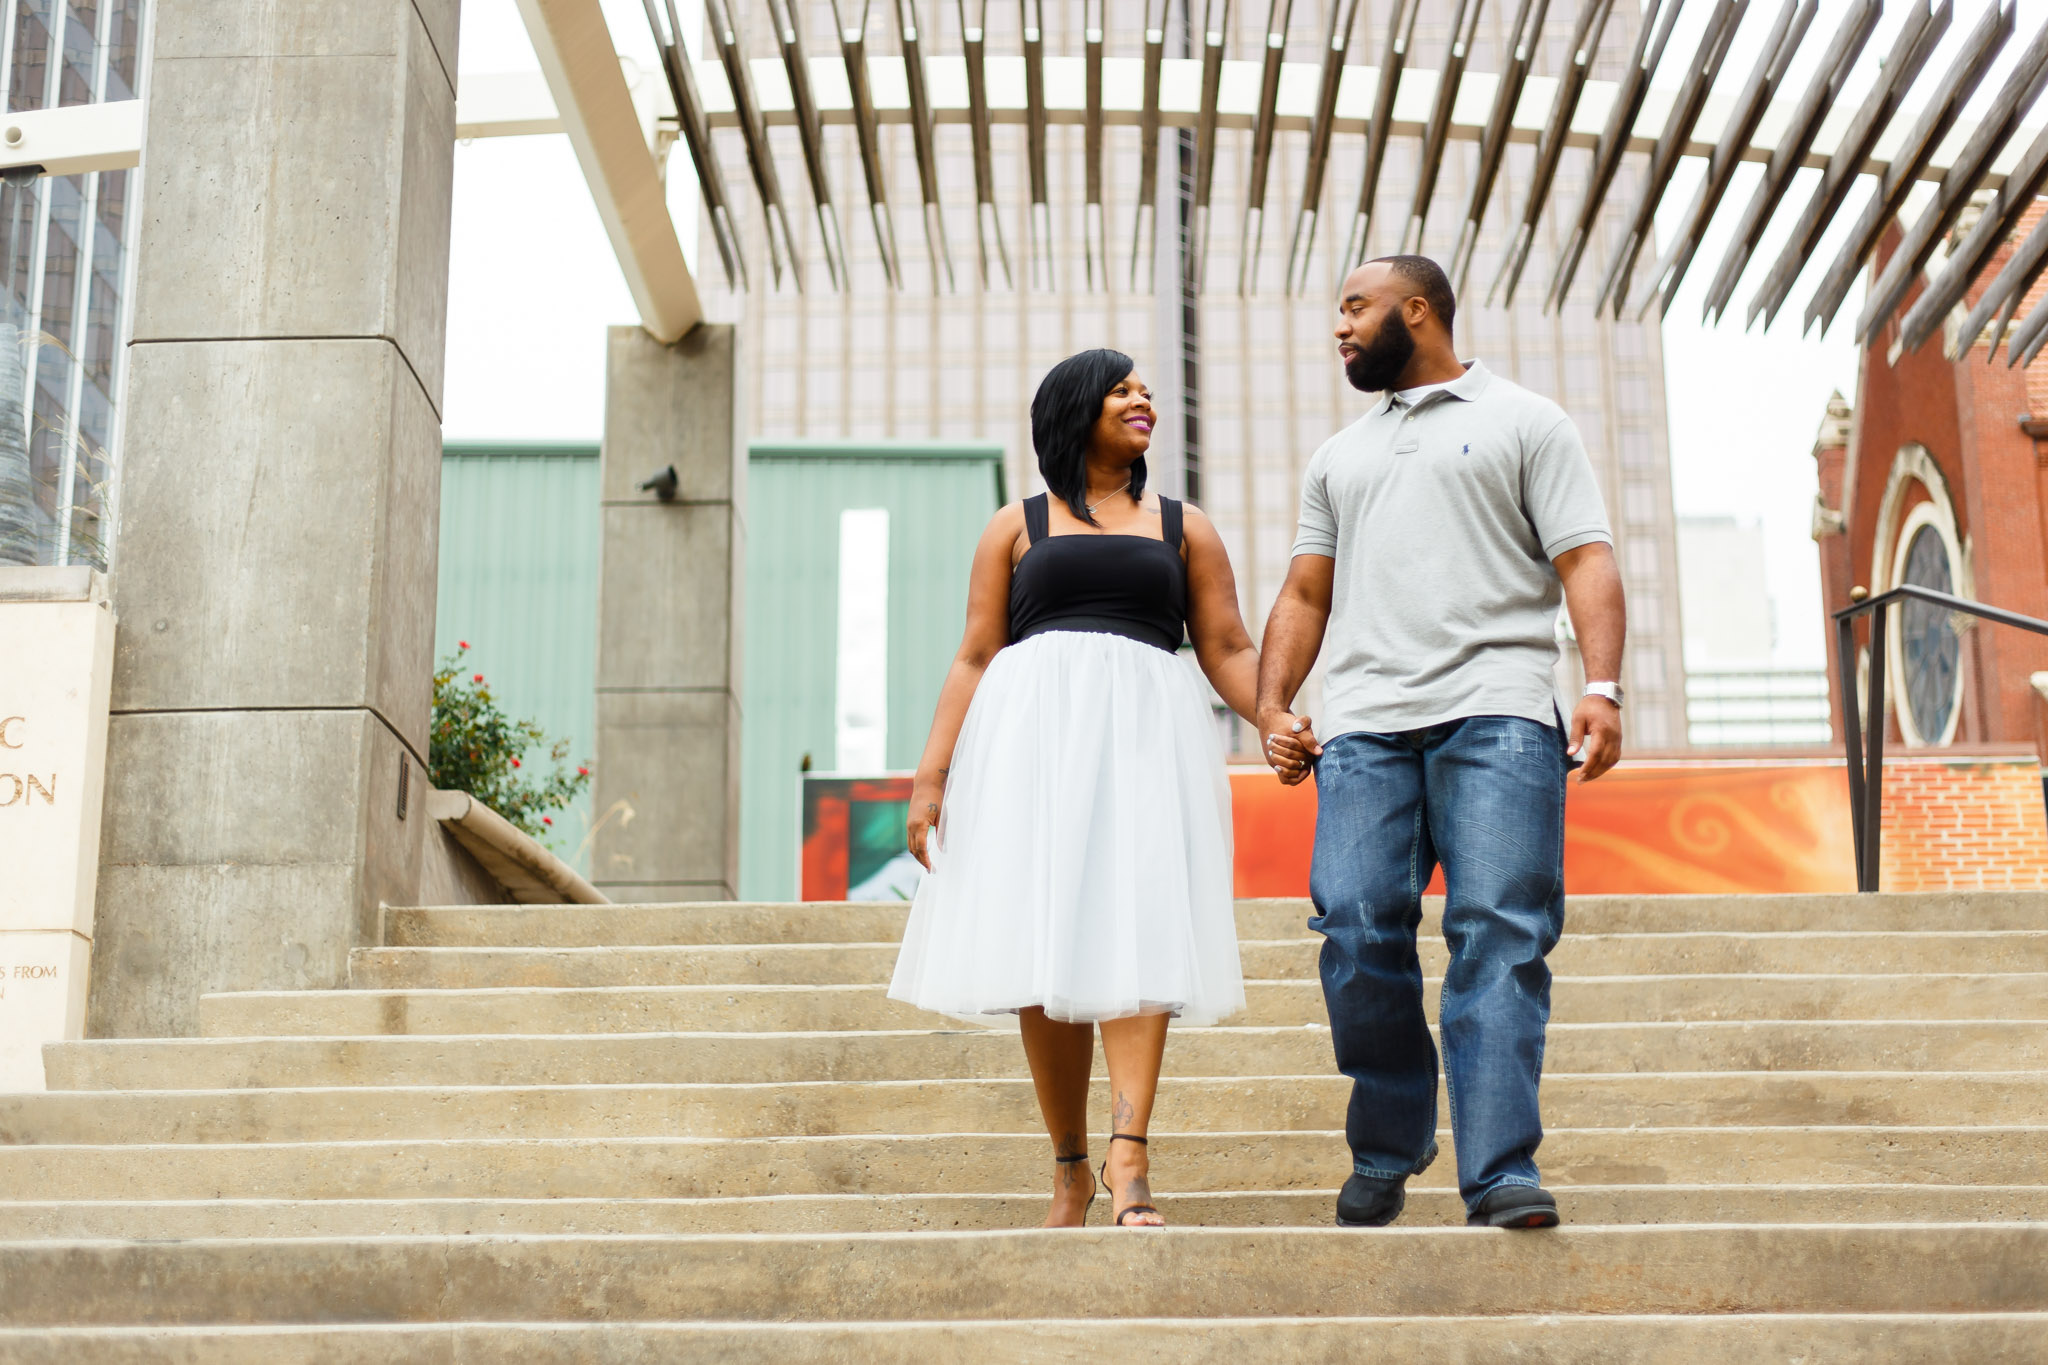 Wedding engagement photo shoot in Dallas arts district with photos taken by Amber Knowles